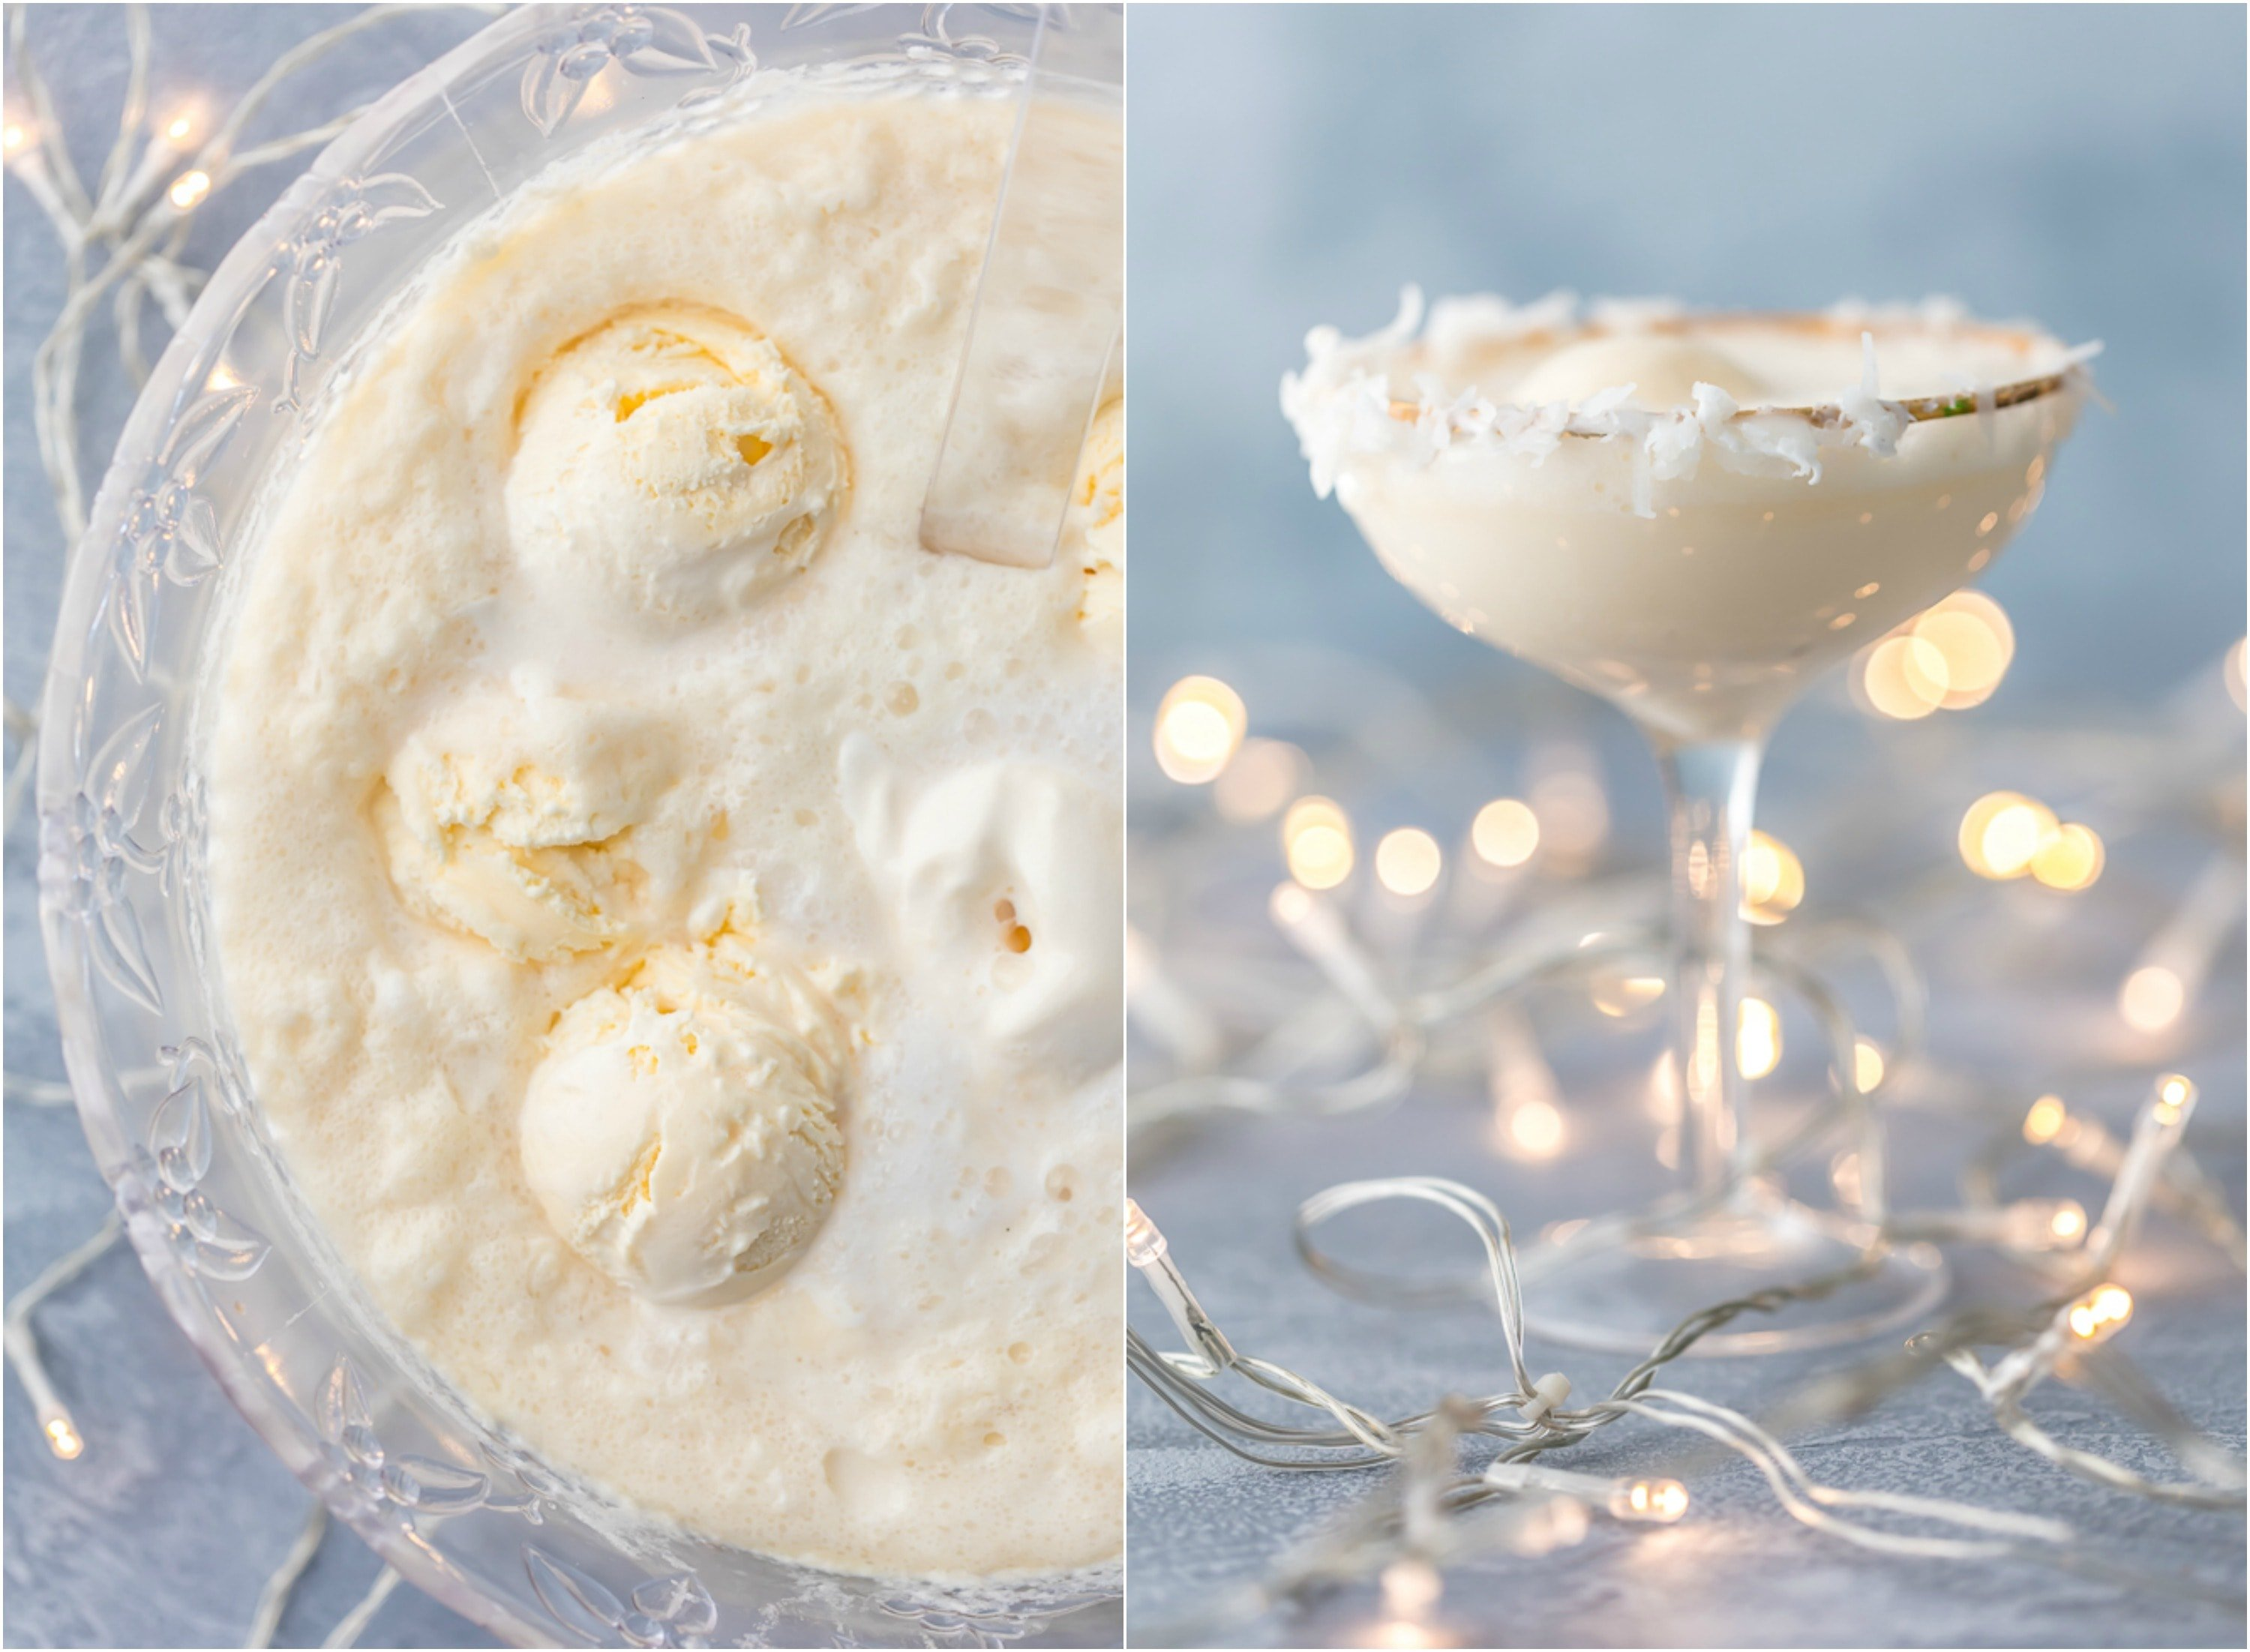 SNOW PUNCH vanilla non-alcoholic holiday punch photo collage